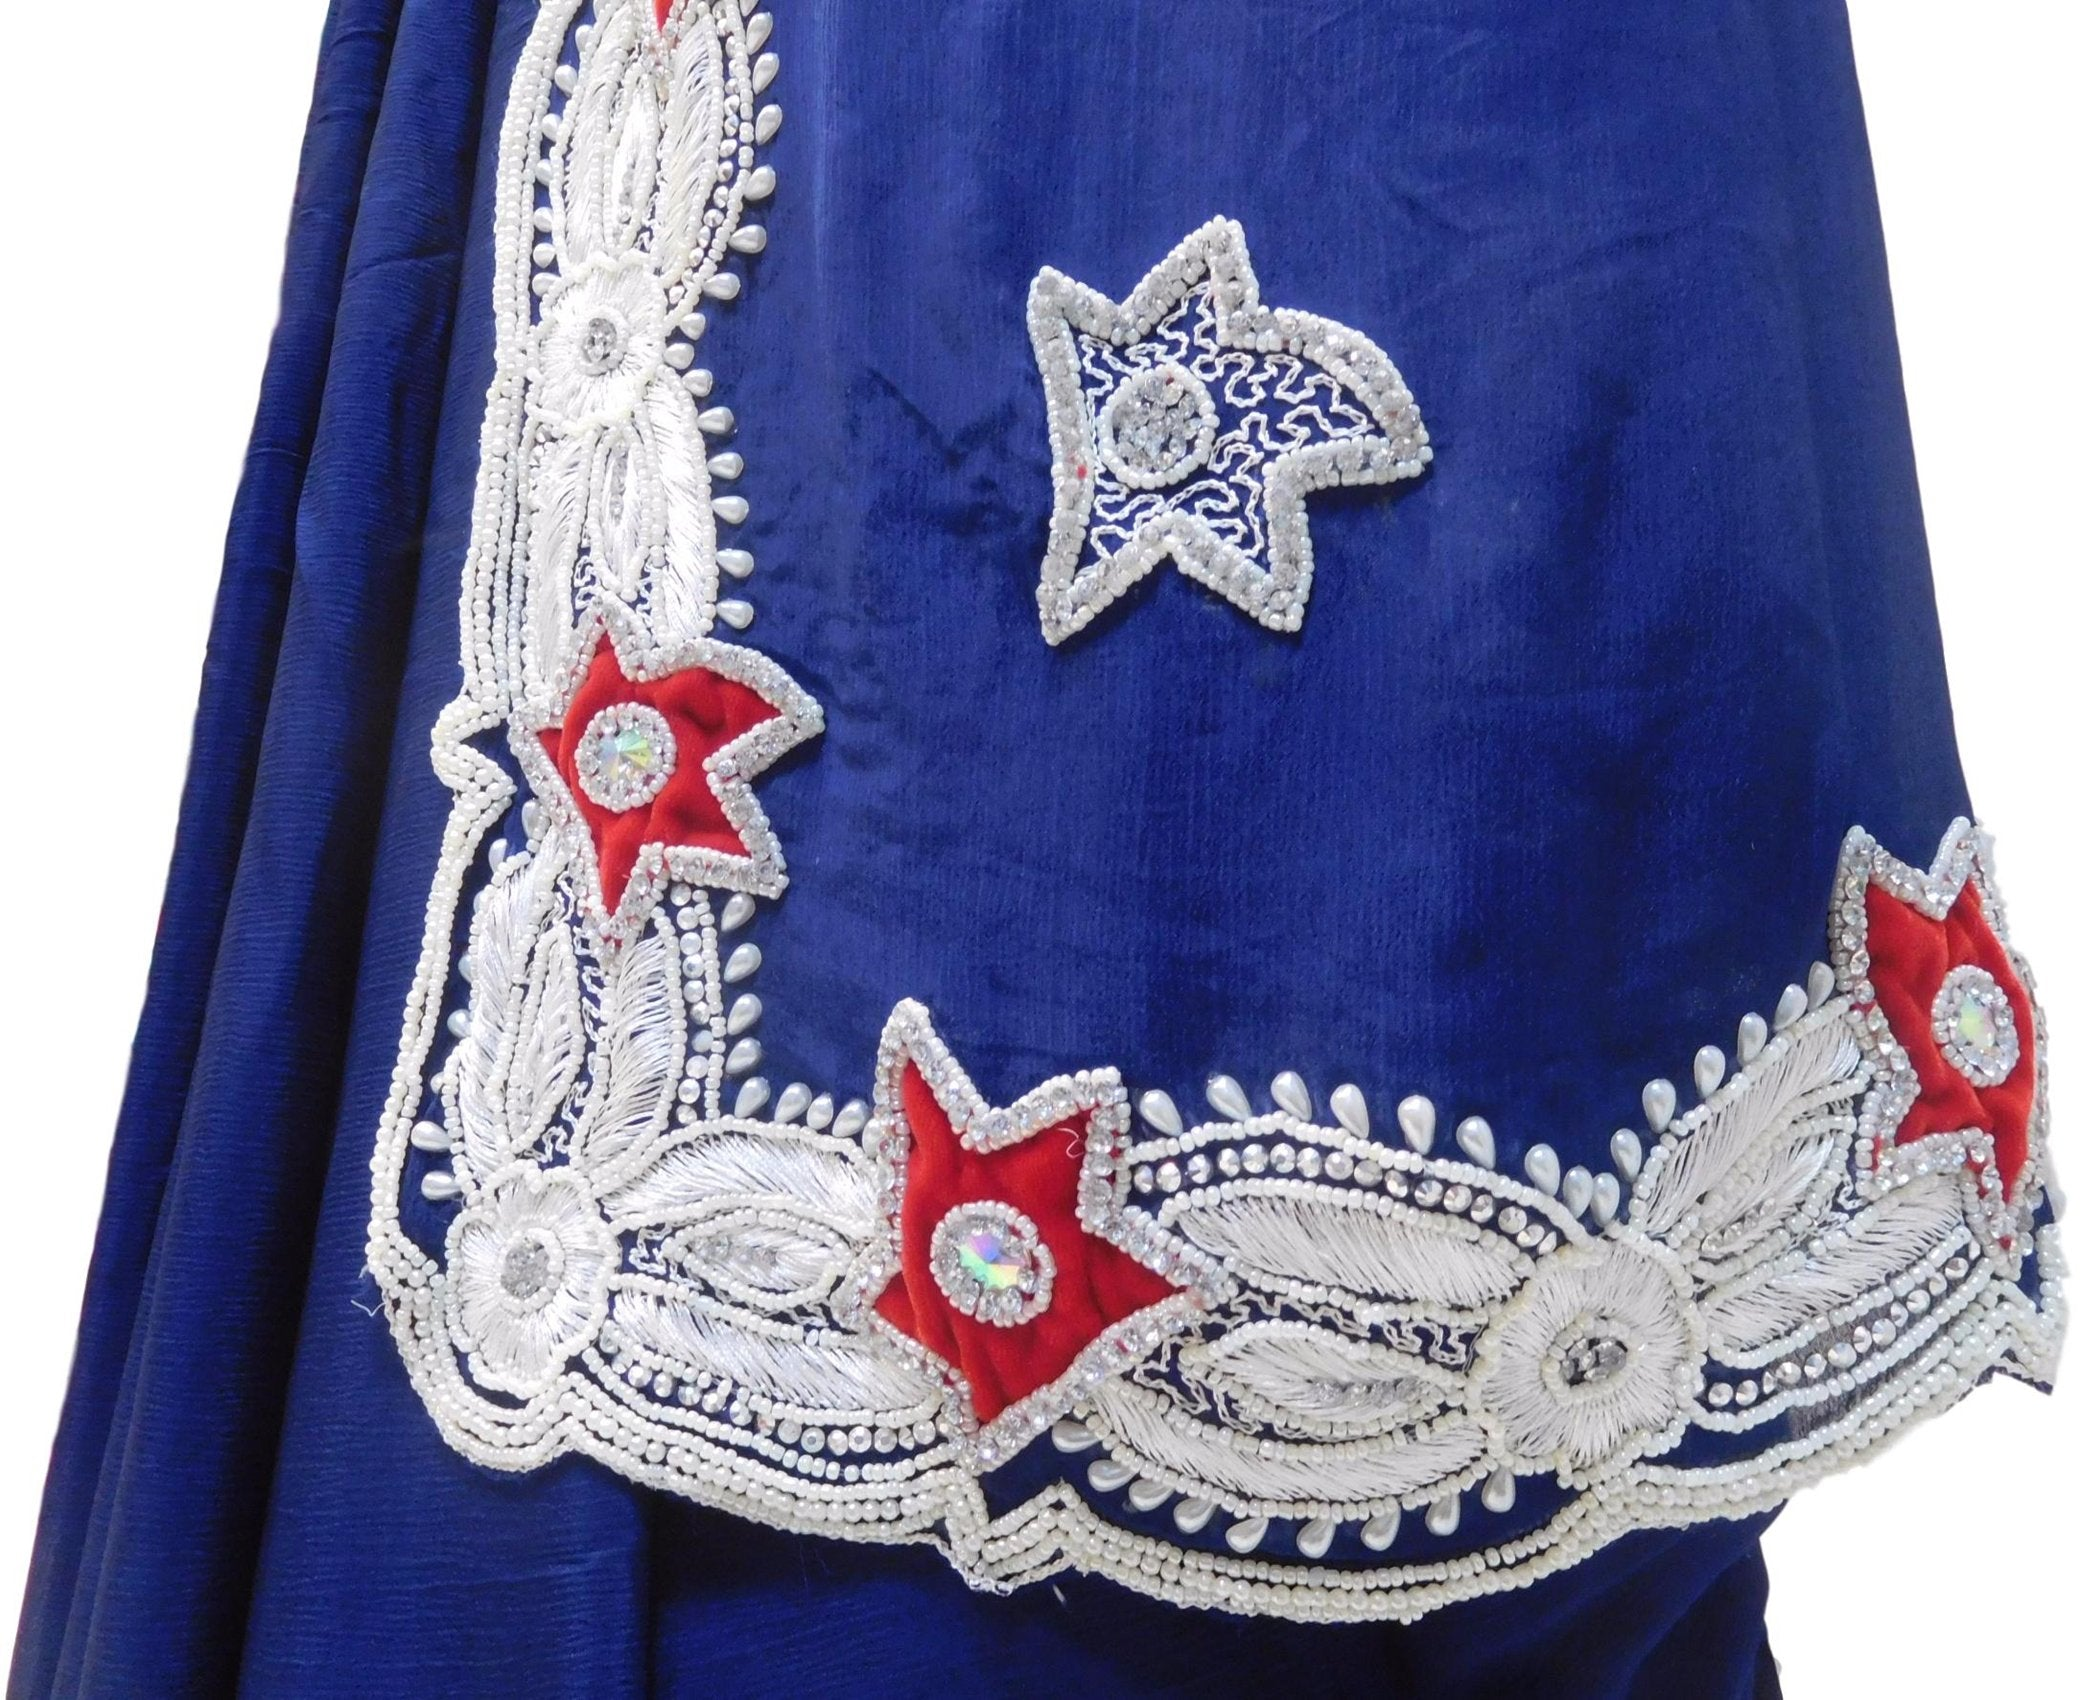 Blue Designer Wedding Partywear Crepe (Chinon) Pearl Beads Thread Stone Hand Embroidery Work Bridal Cutwork Border Saree Sari